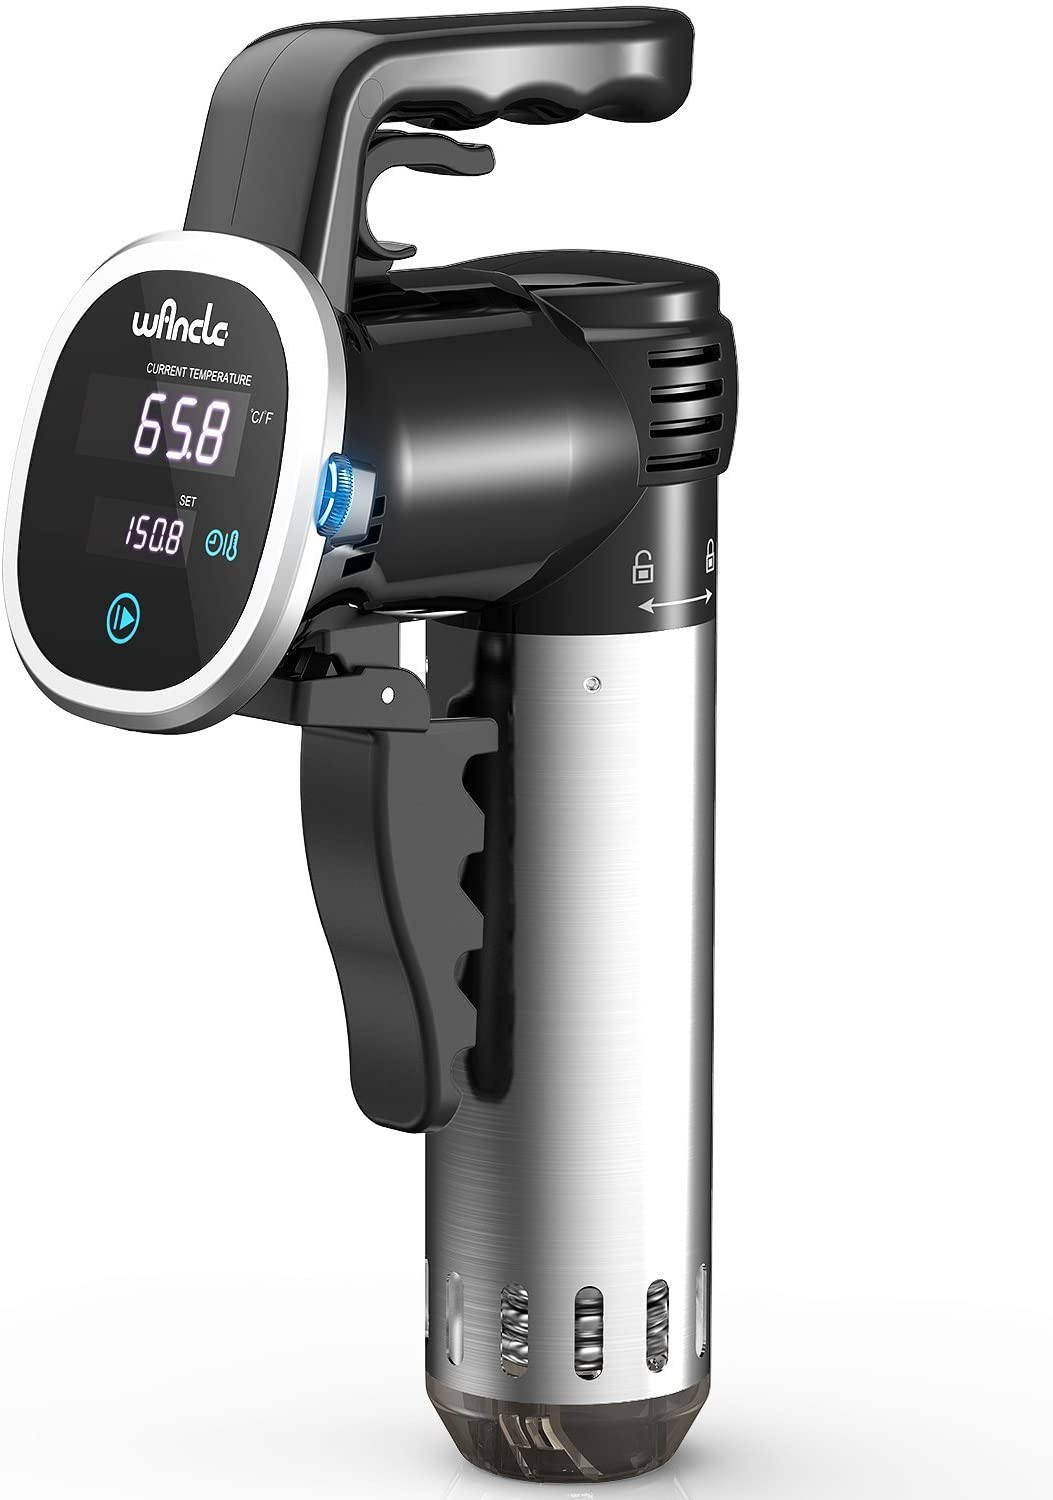 Wancle 850-Watt Thermal Sous Vide For The Home Cook